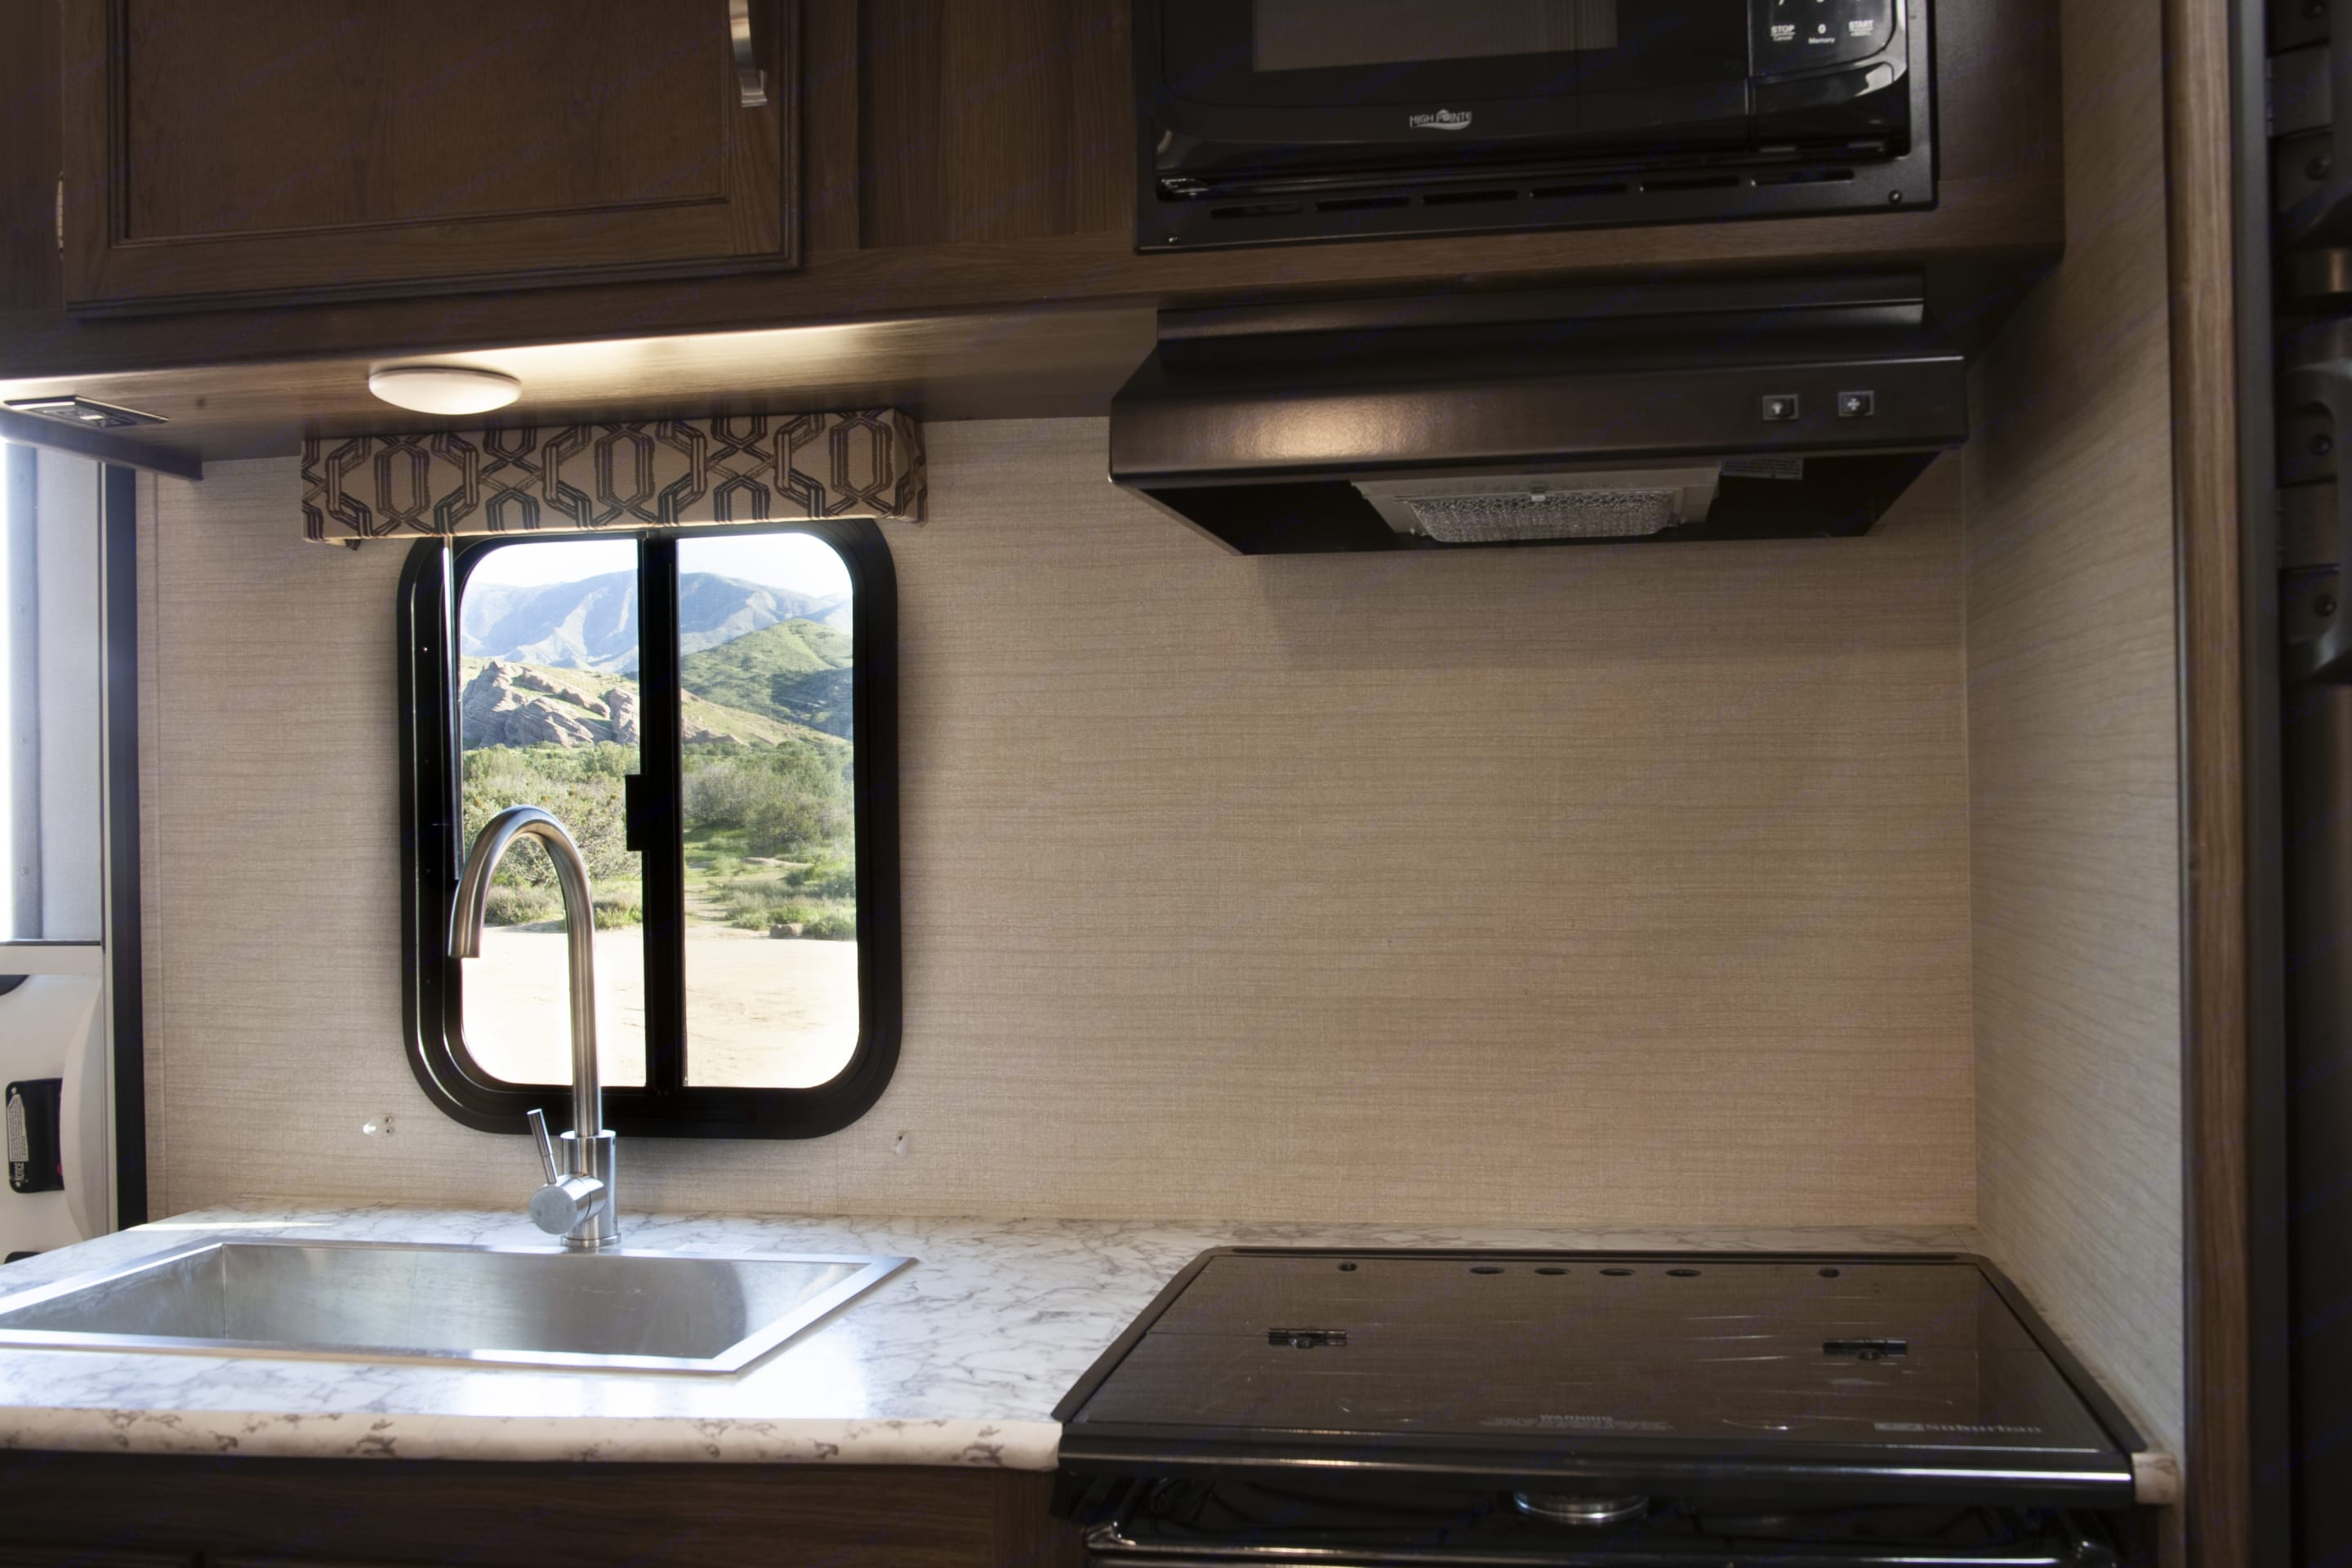 Kitchen stove and microwave. Keystone Bullet 2019